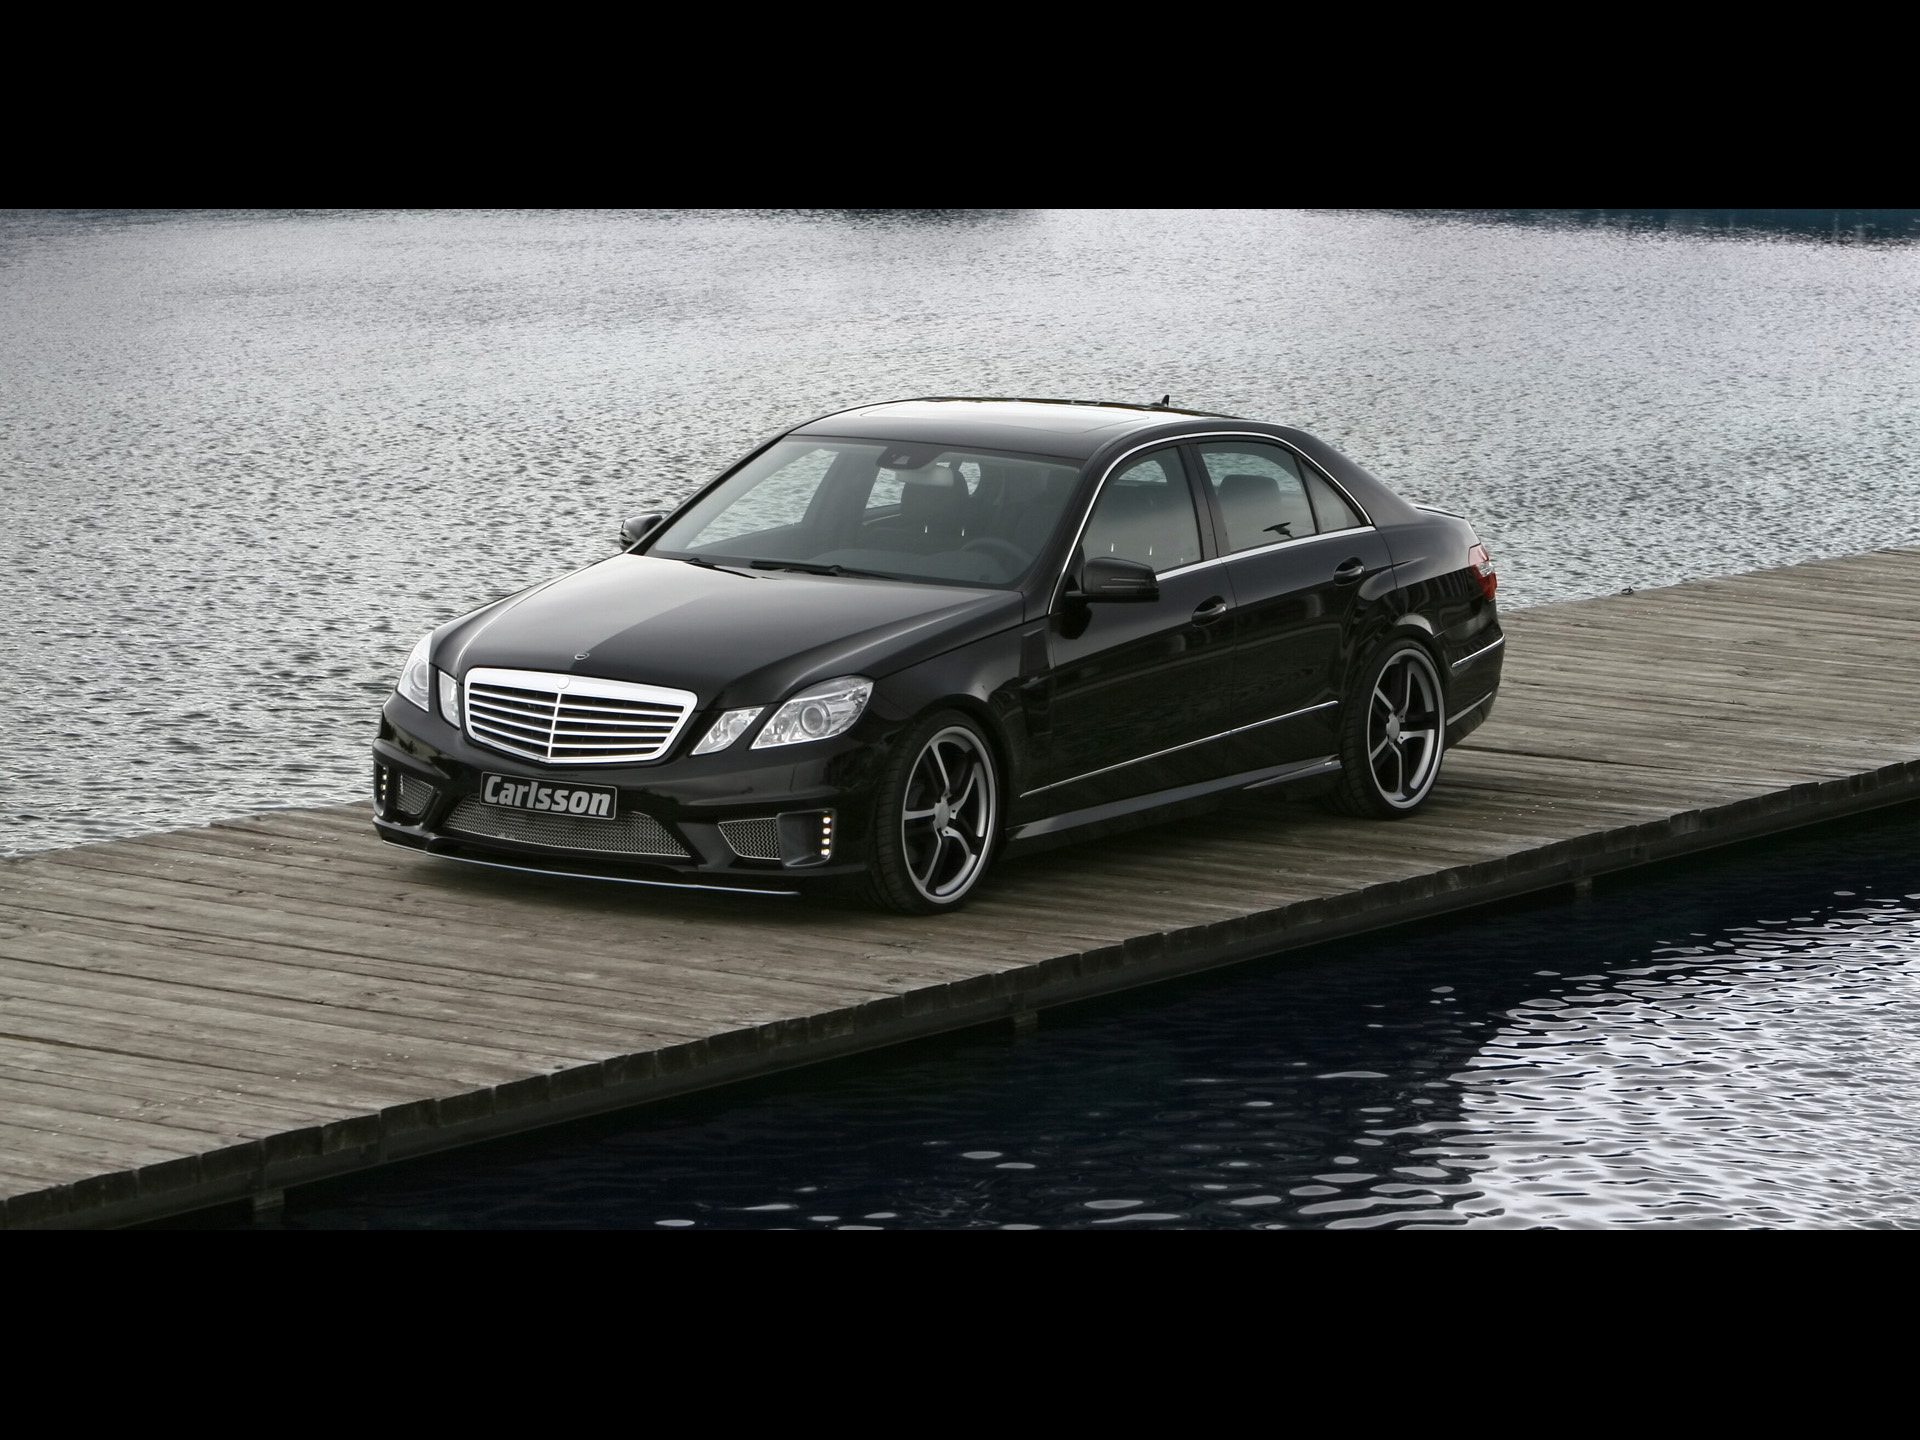 Carlsson E-Class photo 63928